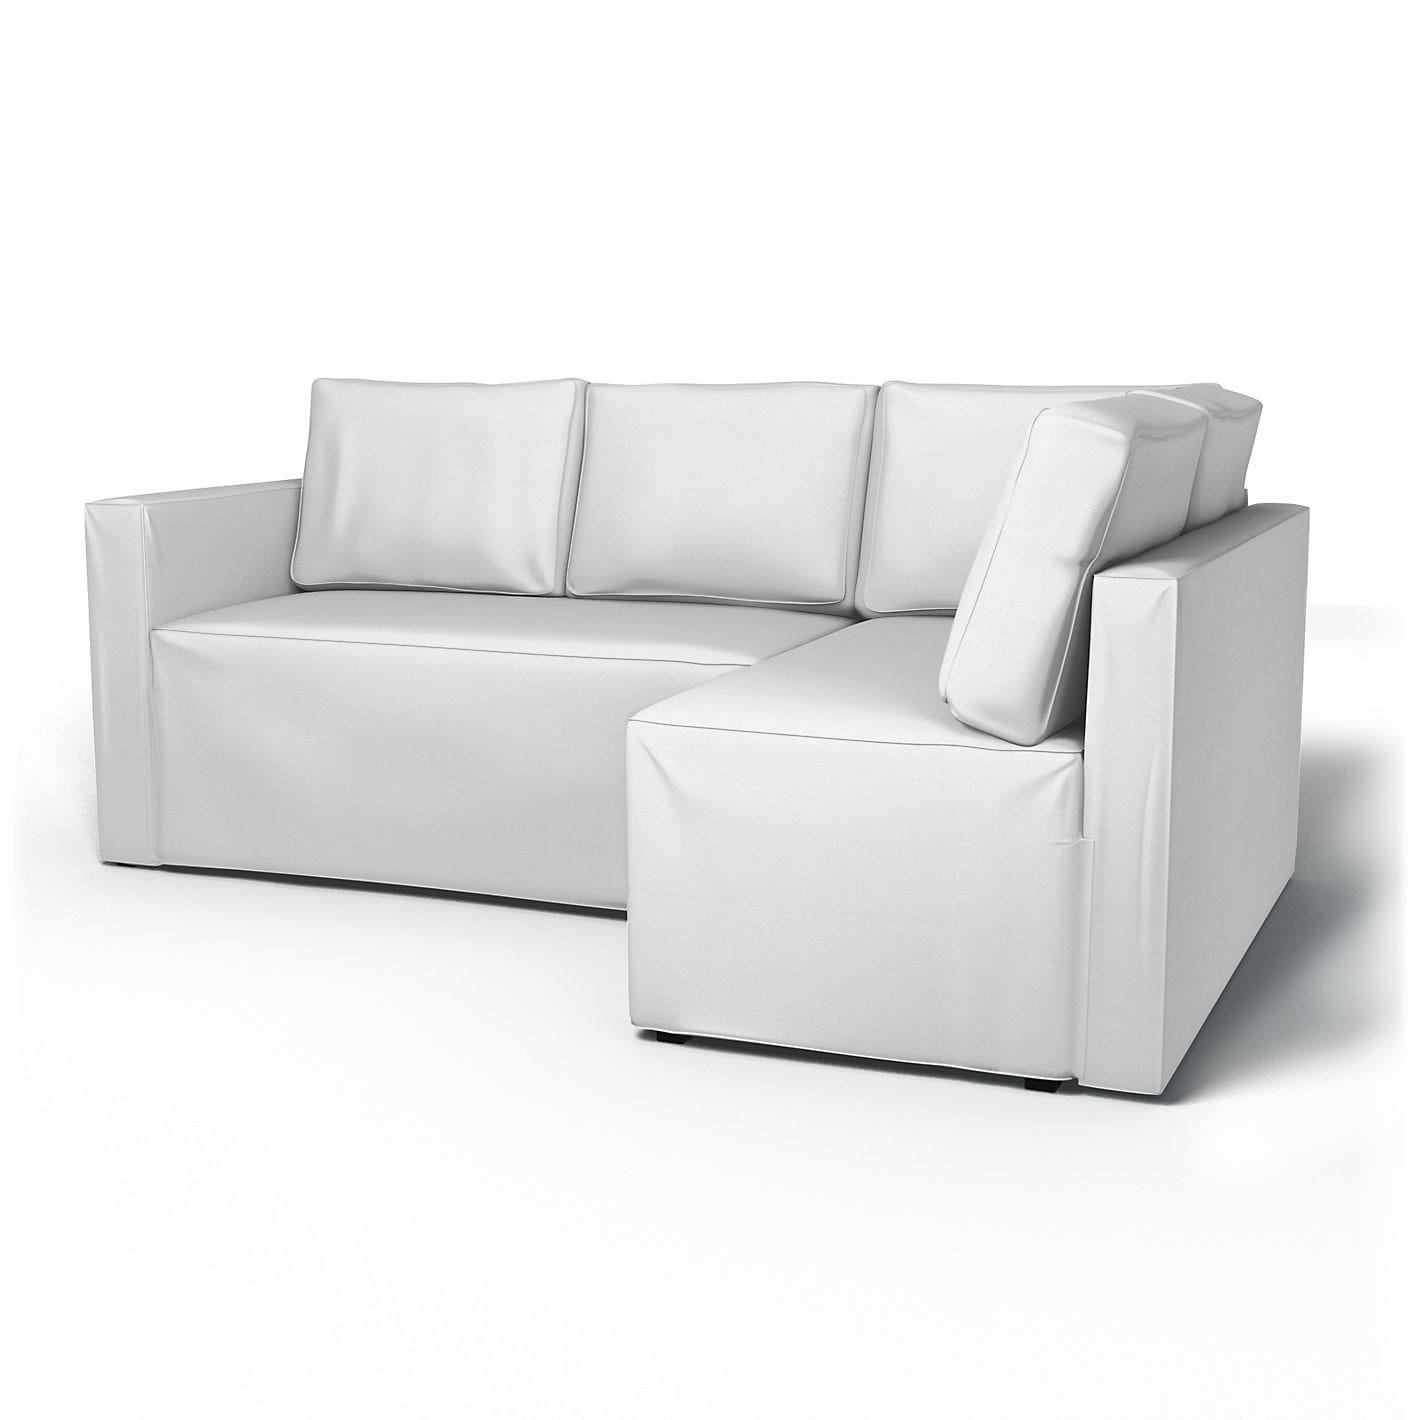 Enjoyable Sofa Covers For Ikea Couches Bemz Caraccident5 Cool Chair Designs And Ideas Caraccident5Info